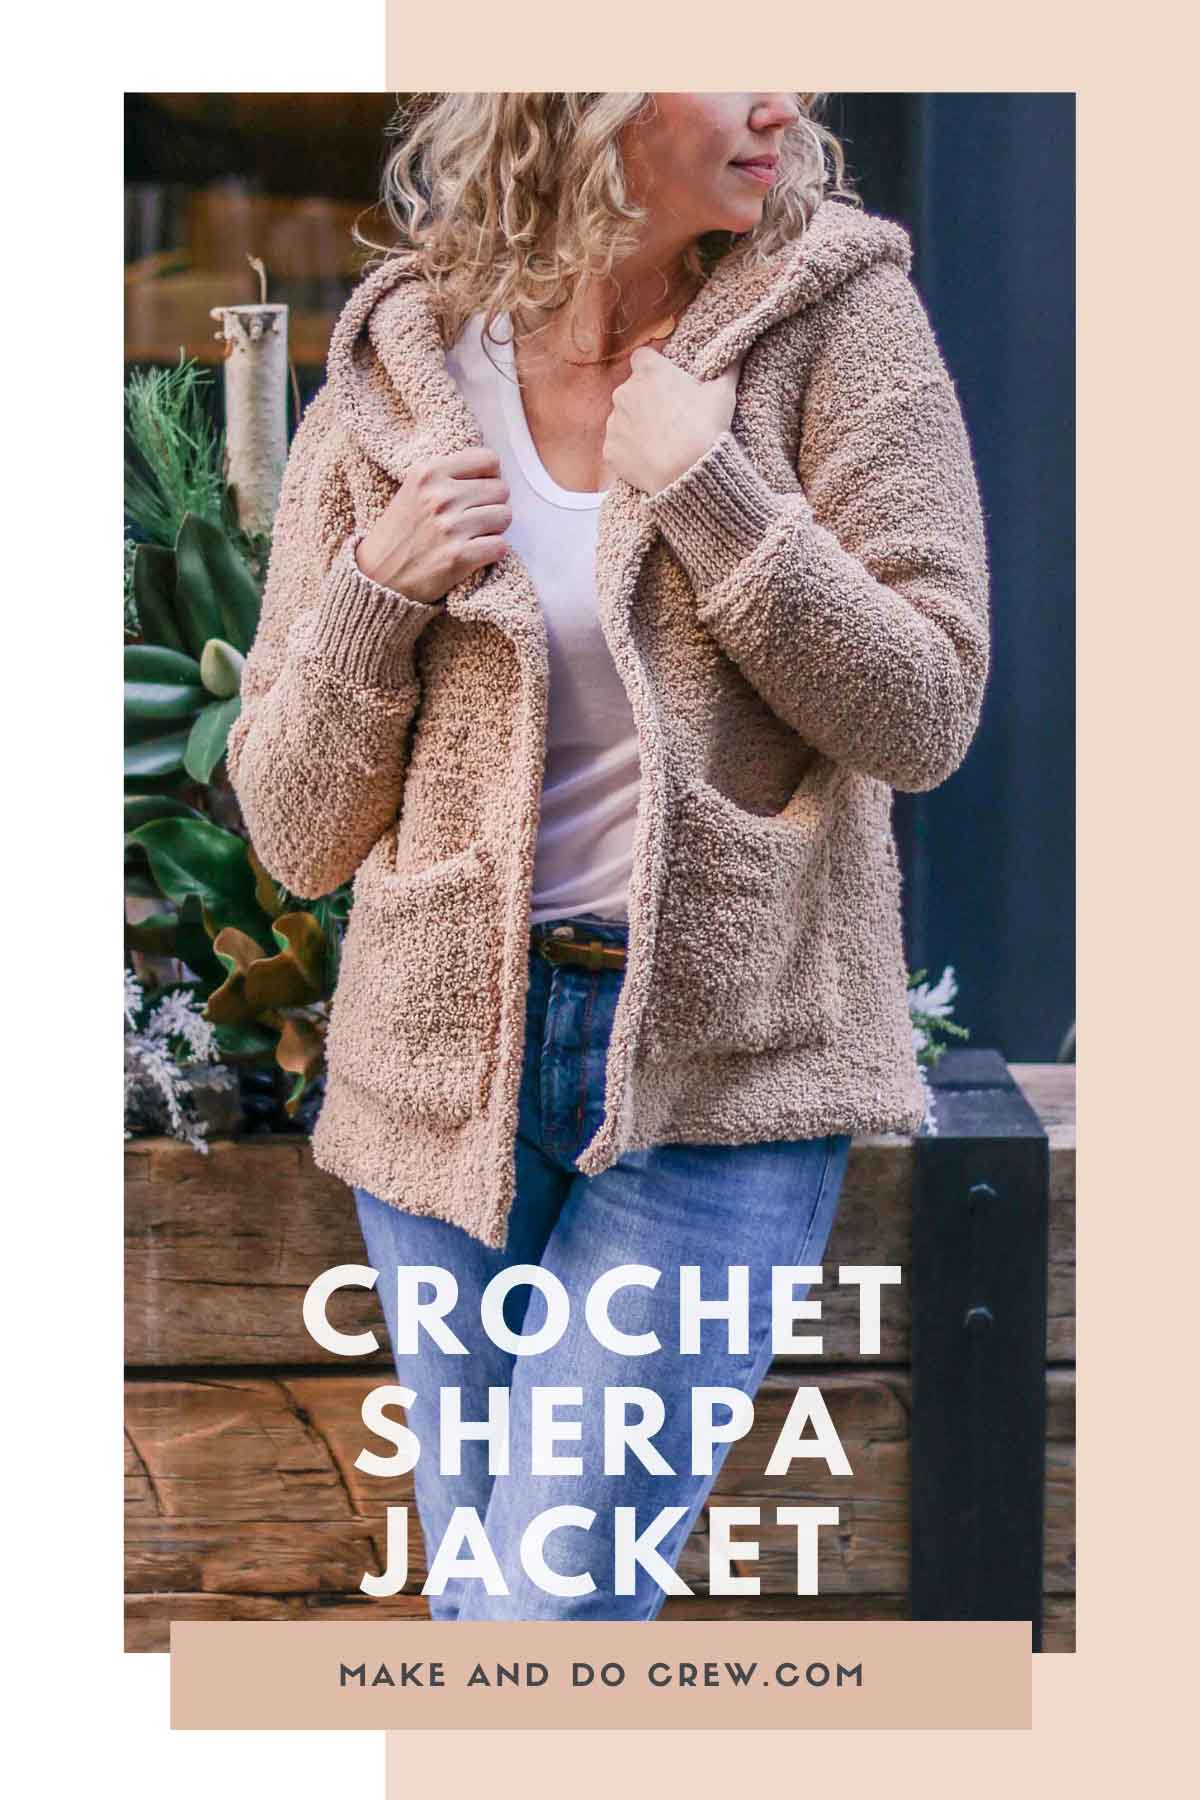 Use basic Tunisian crochet skills, you can make this hooded crochet sherpa sweater jacket pattern from Make & Do Crew. Free pattern + beginner video tutorials!